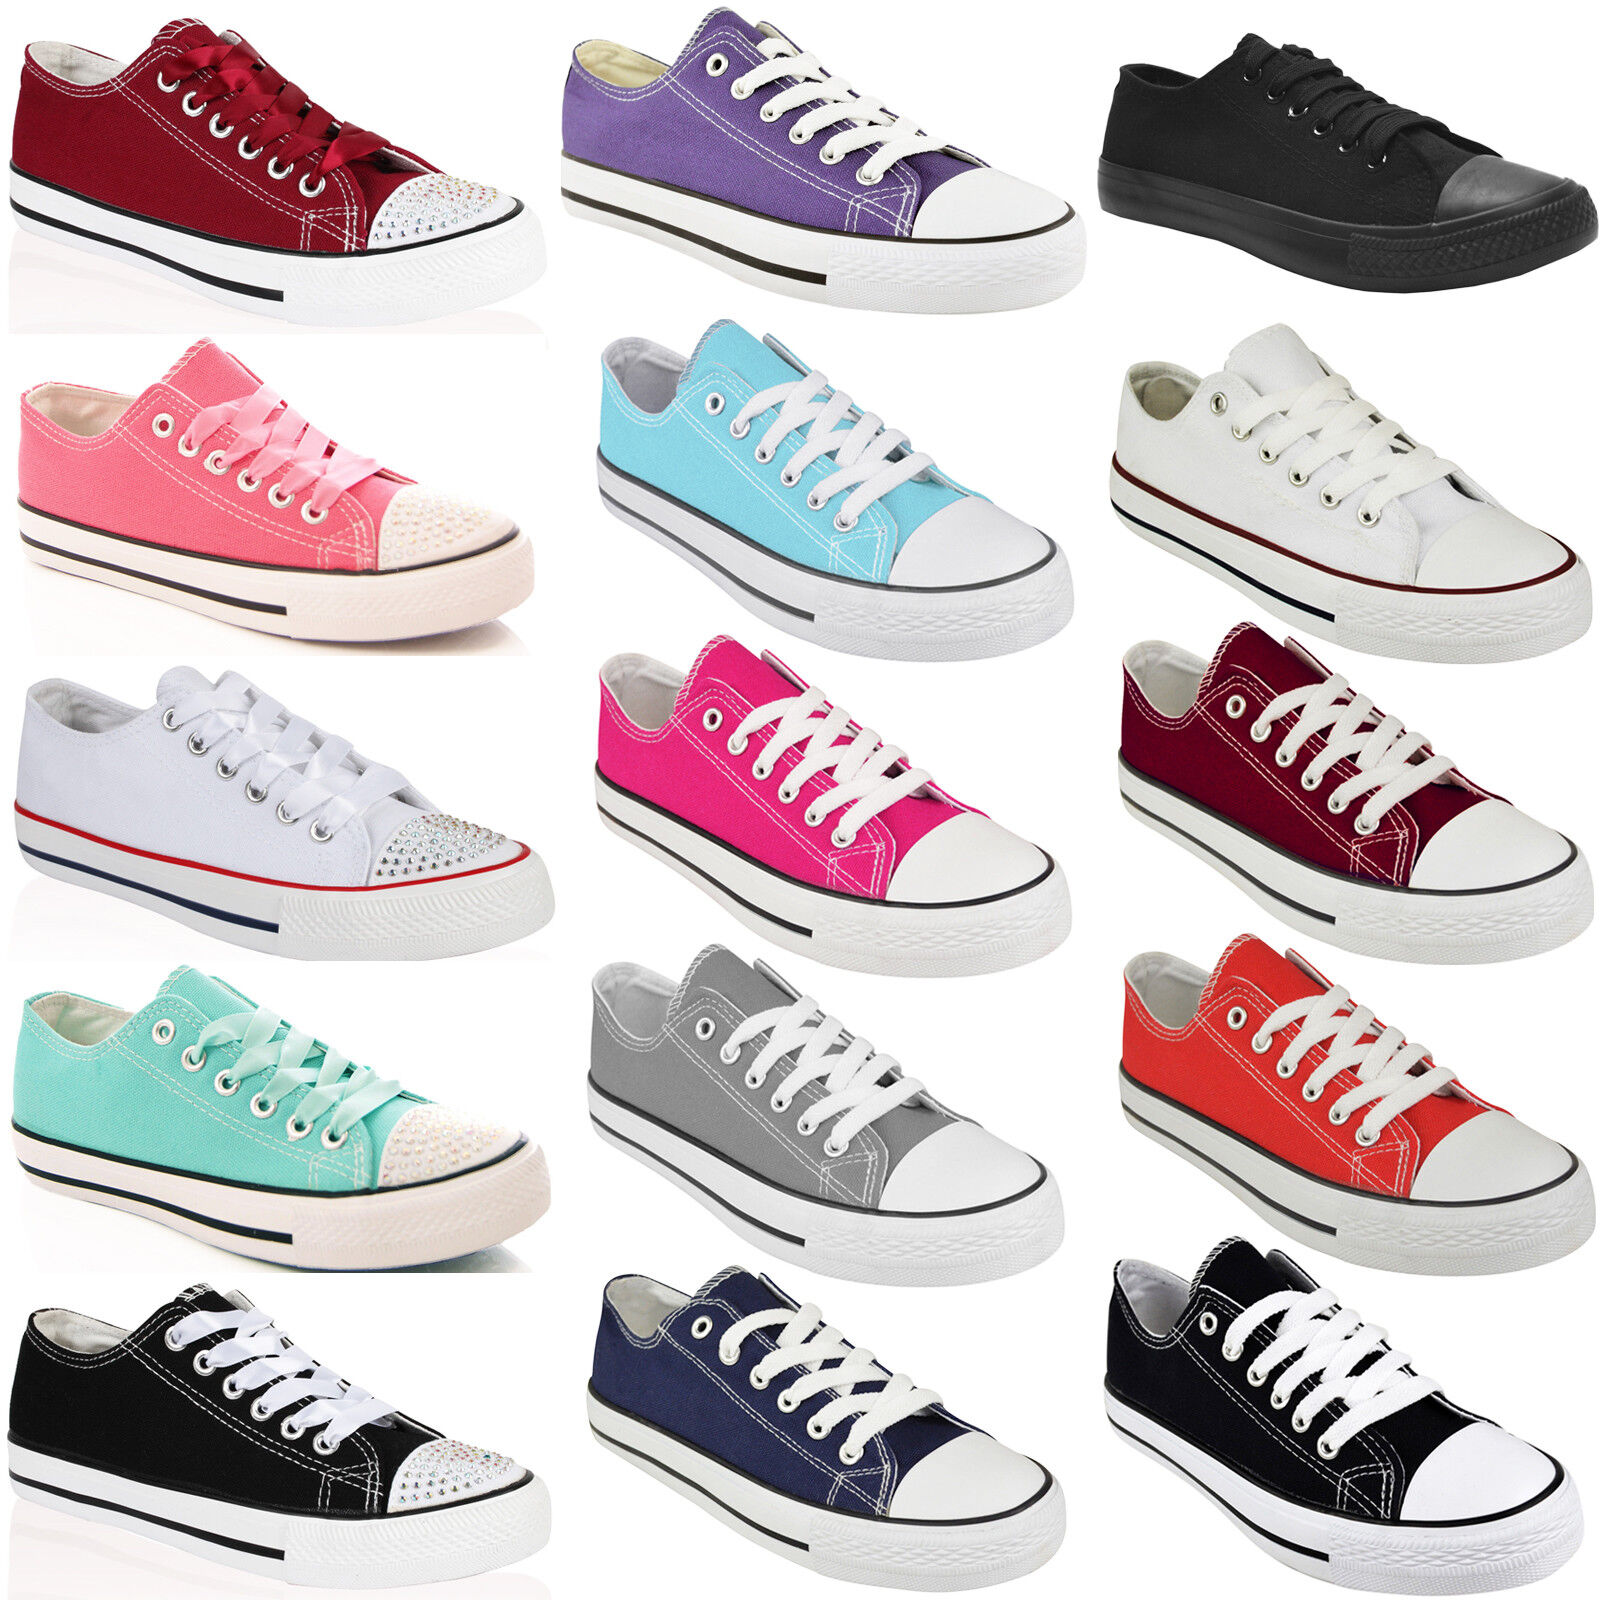 BRAND NEW LADIES WOMENS UP GIRLS CASUAL CANVAS LACE UP WOMENS PLIMSOLLS FLAT TRAINERS SIZE 9c7e48